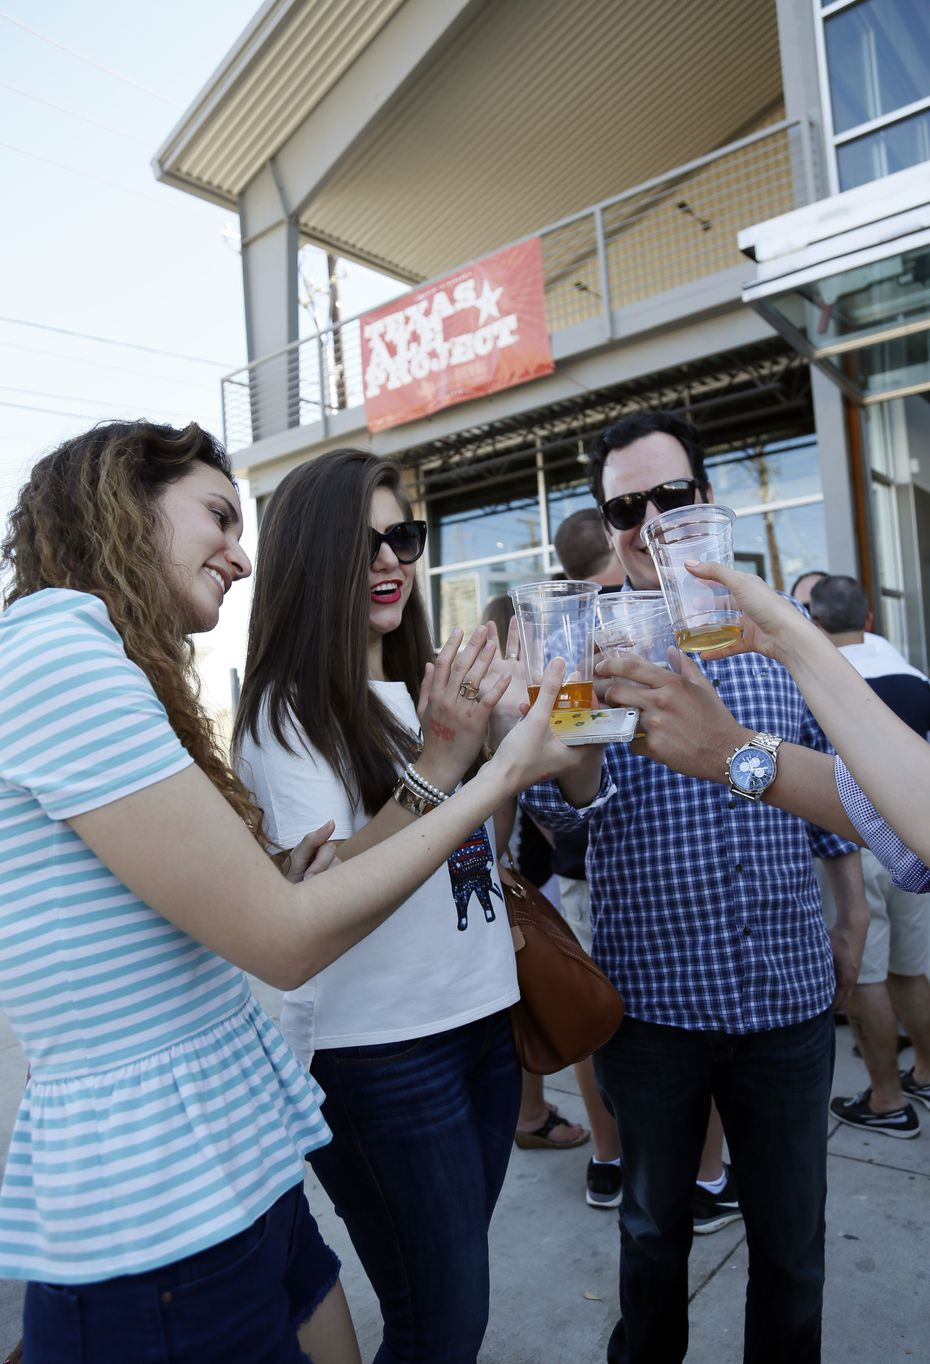 Elia Torres, Hileana Tamez, Jorge Muza and other friends (not shown) cheers at Texas Ale Project's grand opening April 25, 2015.